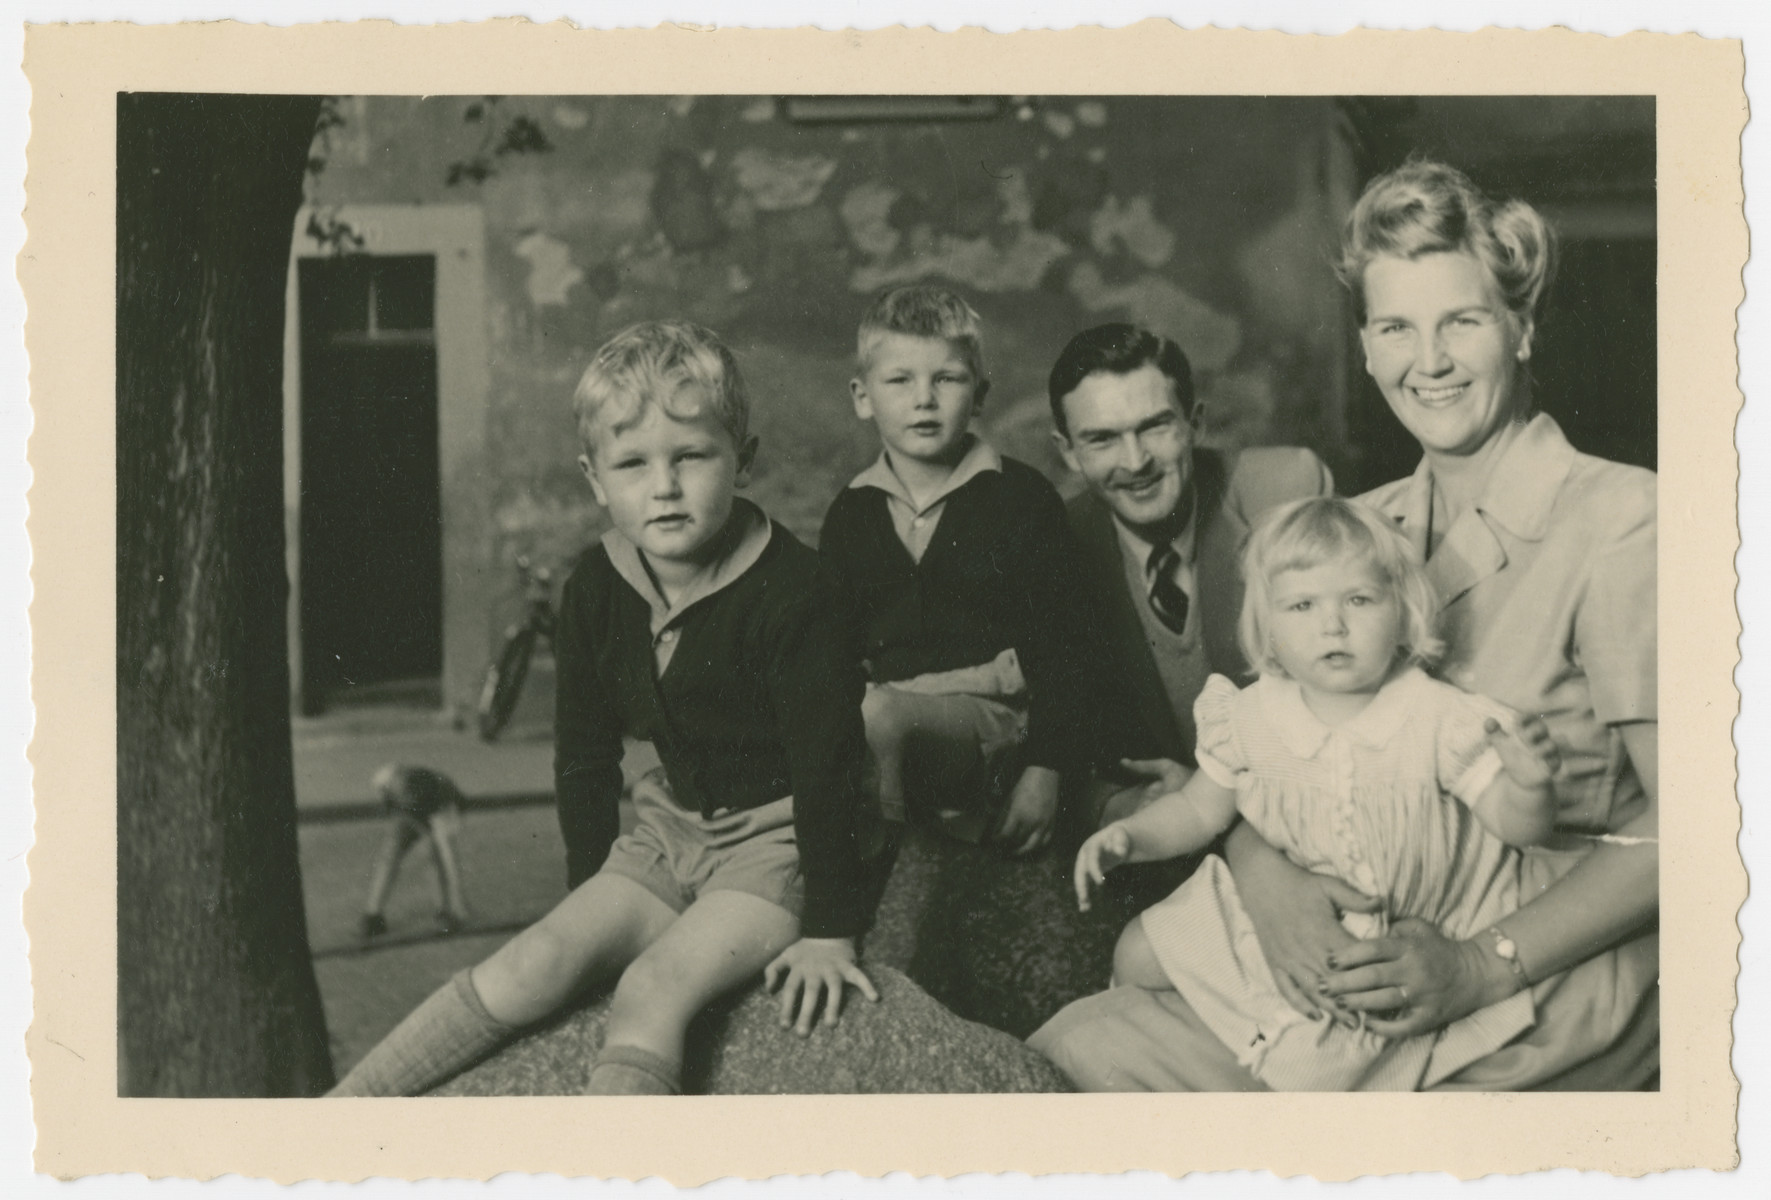 Portrait of the McClelland family.  From left to right: Kirk McClelland, Barre McClelland, Roswell McClelland, and Alice McClelland in the lap of her mother Marjorie McClelland.